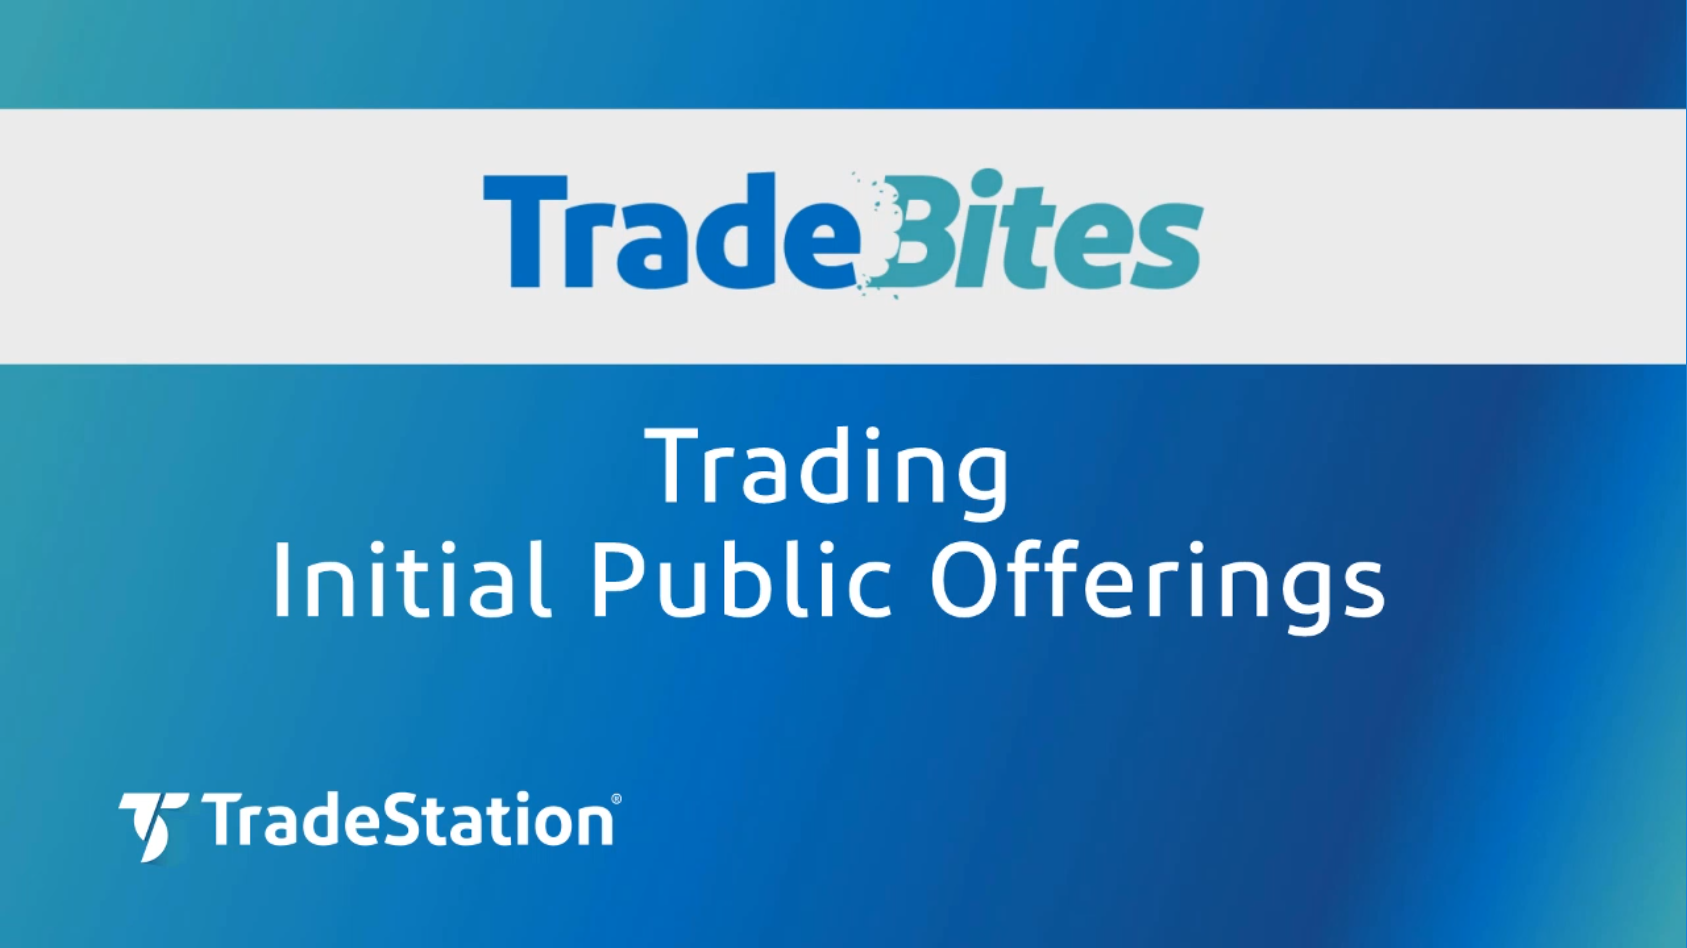 Trading Initial Public Offerings